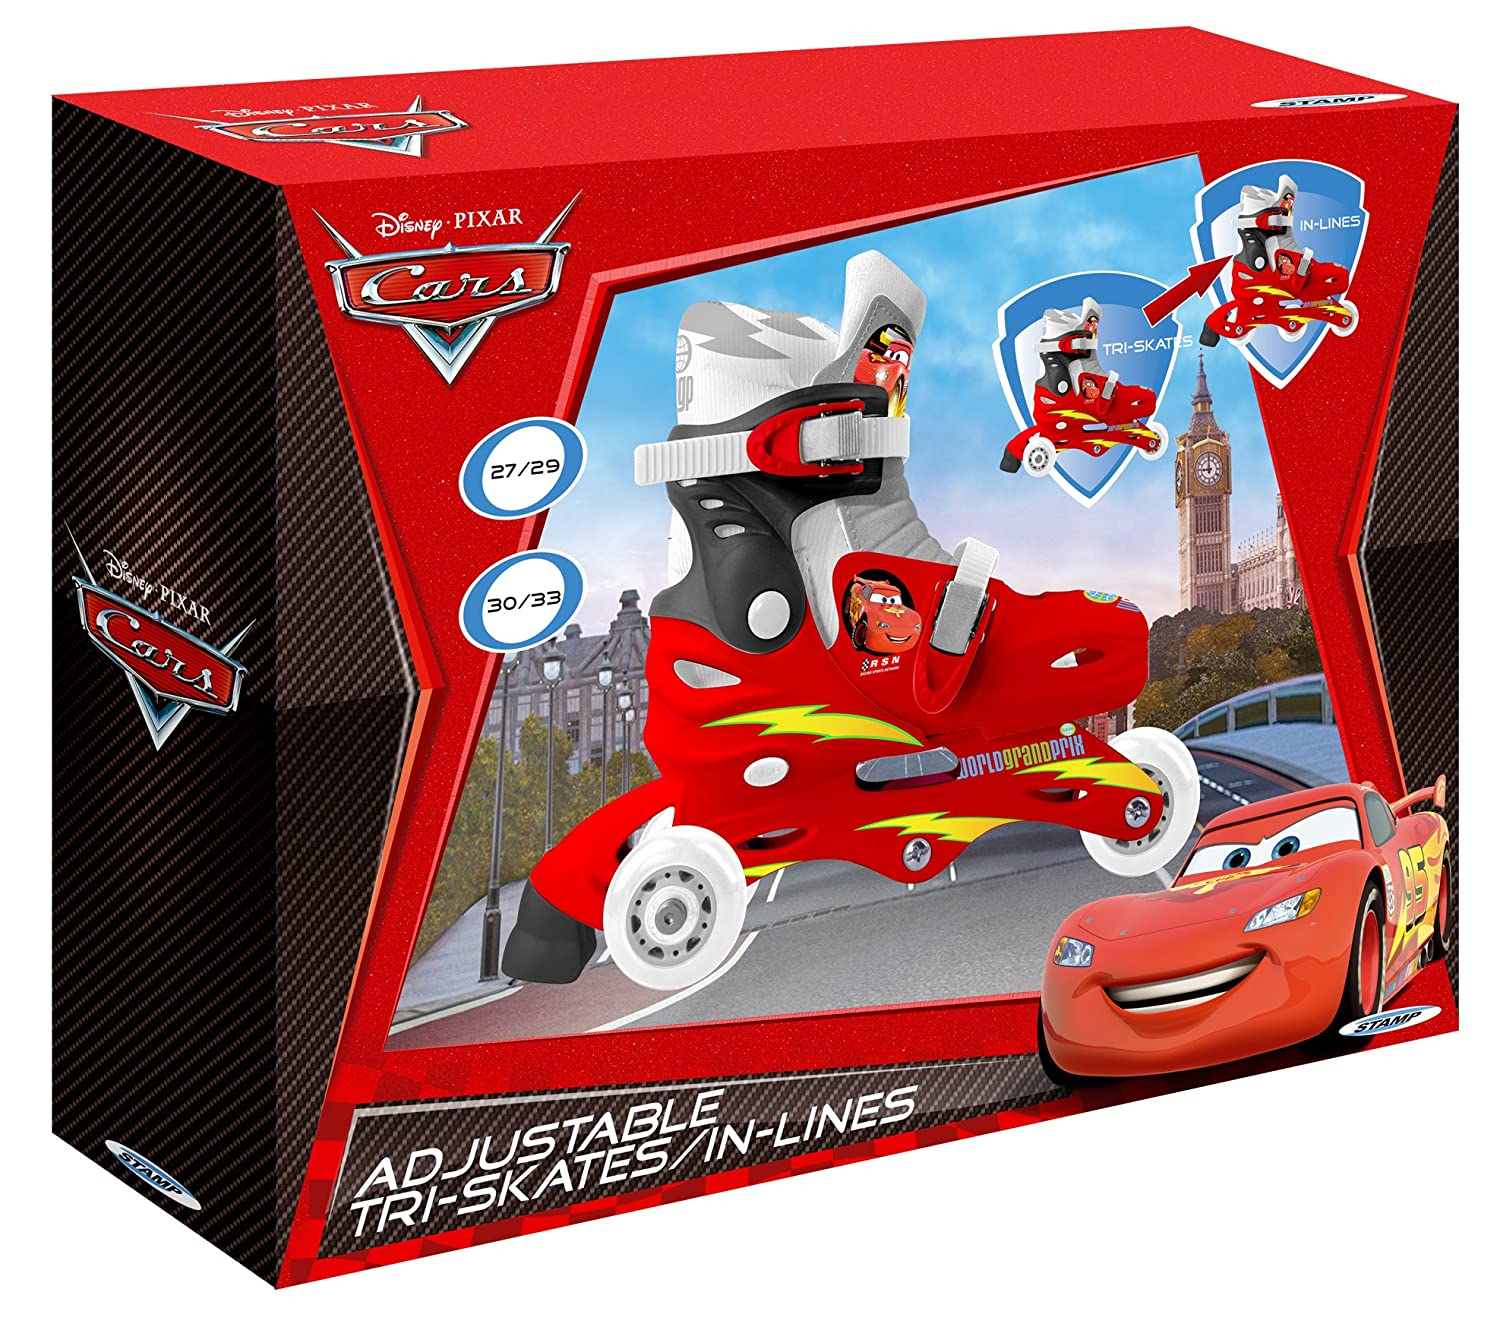 Amazon.com: stamp Disney 2-in-1 Cars 2 Adjust 3-Wheel Skate: Toys & Games